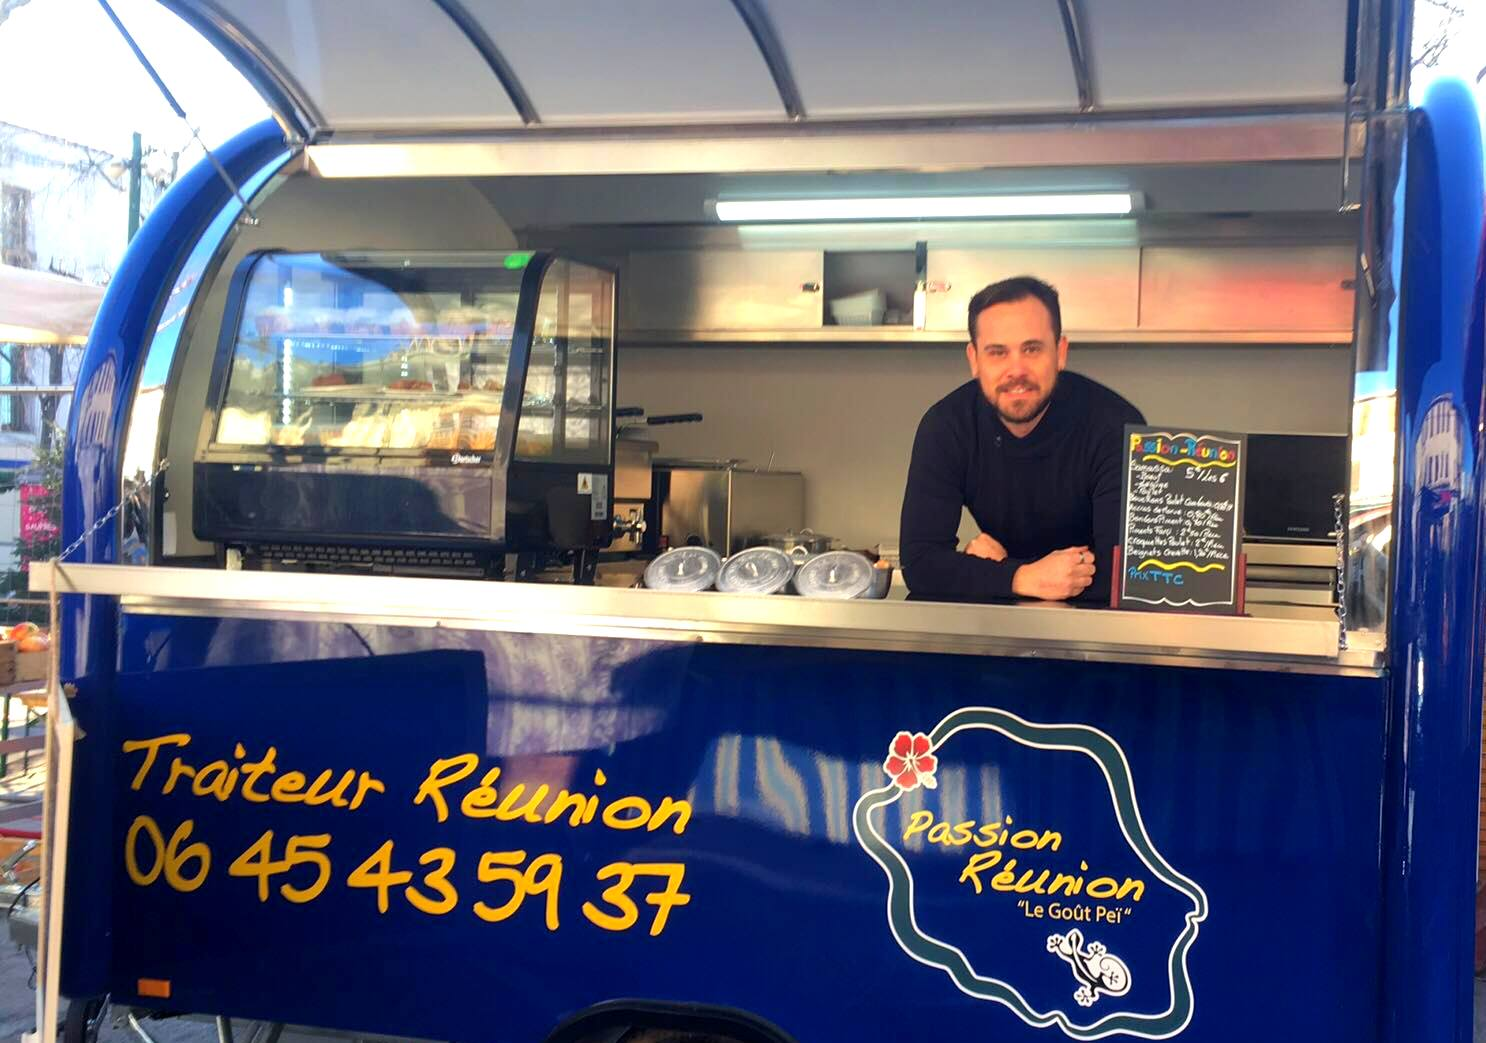 Passion Réunion, le food truck péi à Toulon